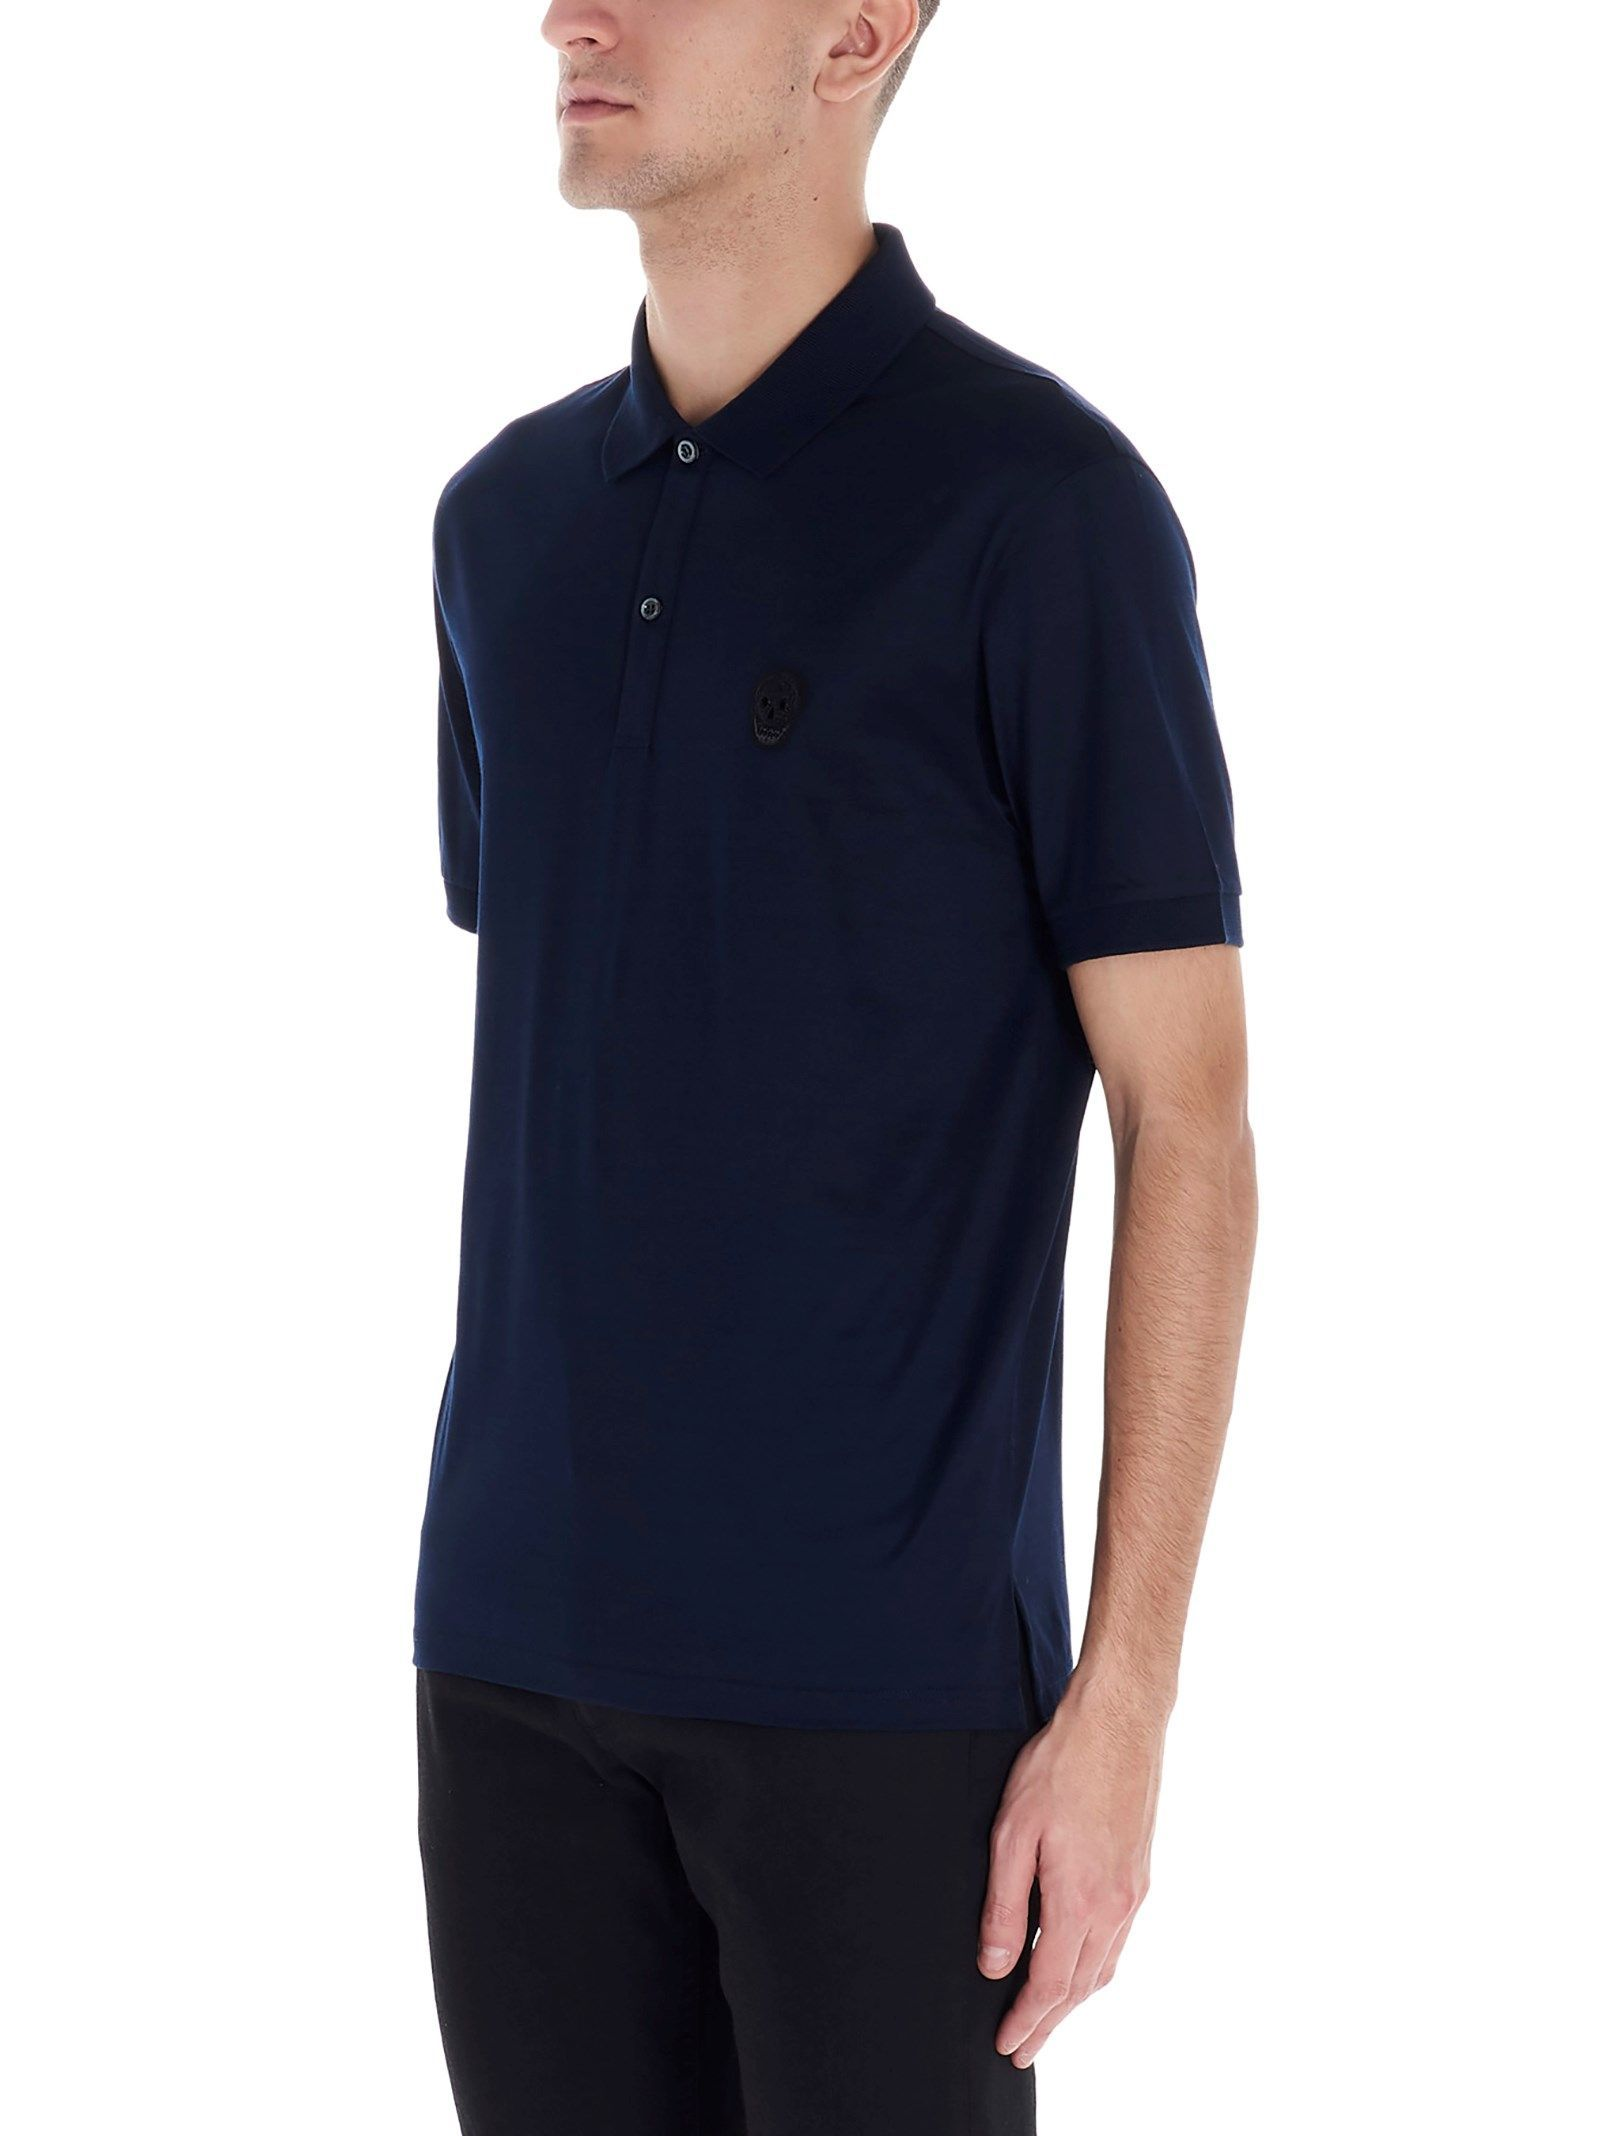 ALEXANDER MCQUEEN MEN'S 599571QOX011000 BLUE COTTON POLO SHIRT